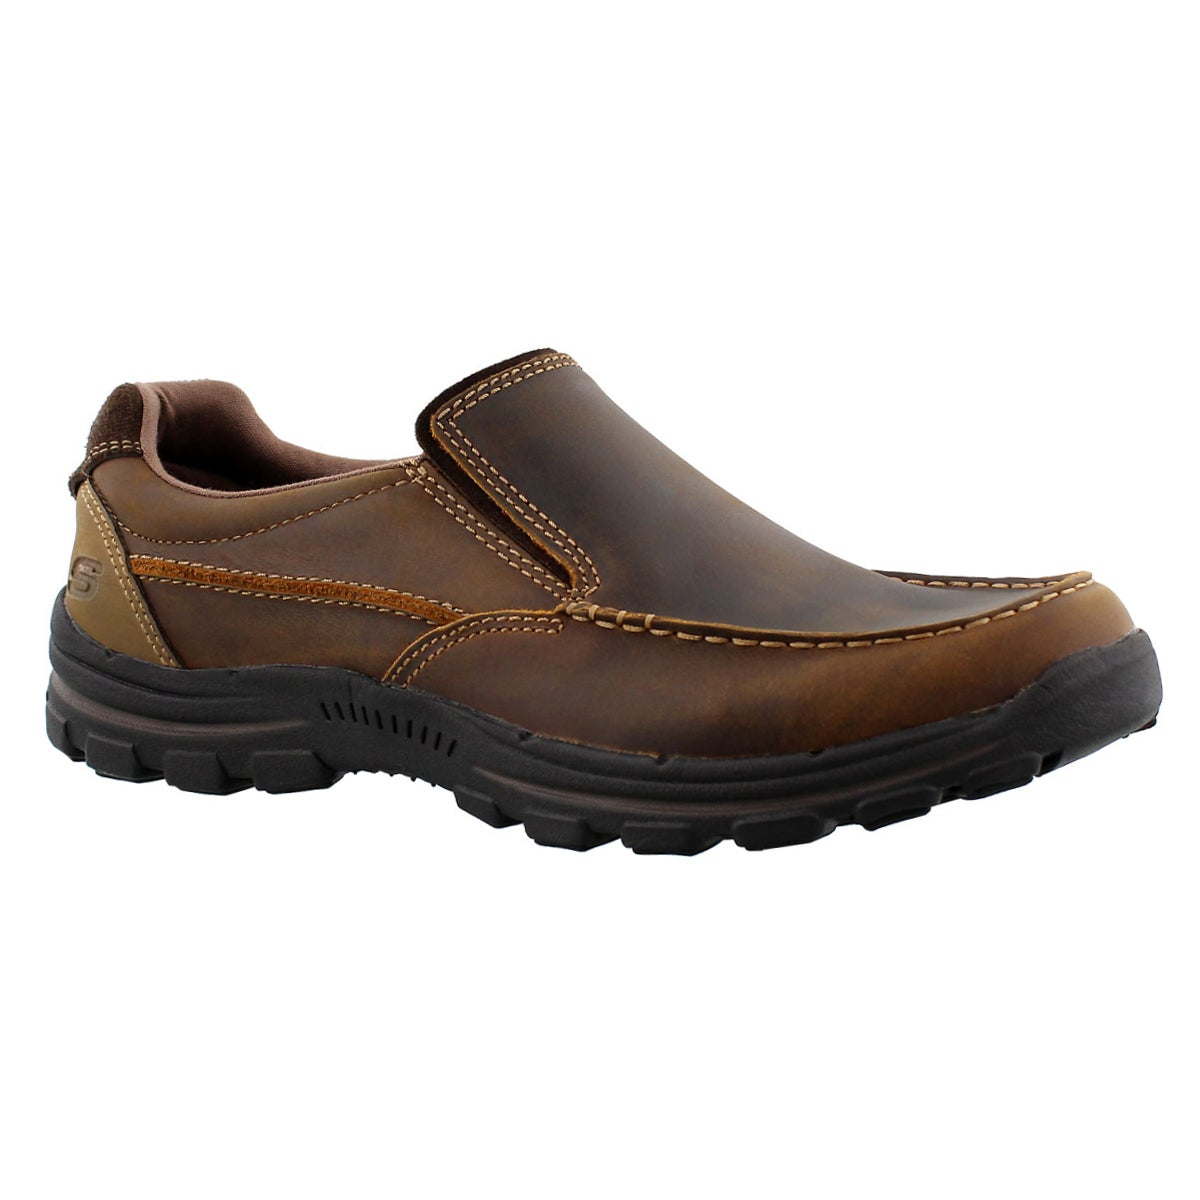 Men's BRAVER RAYLAND dark brown casual shoes